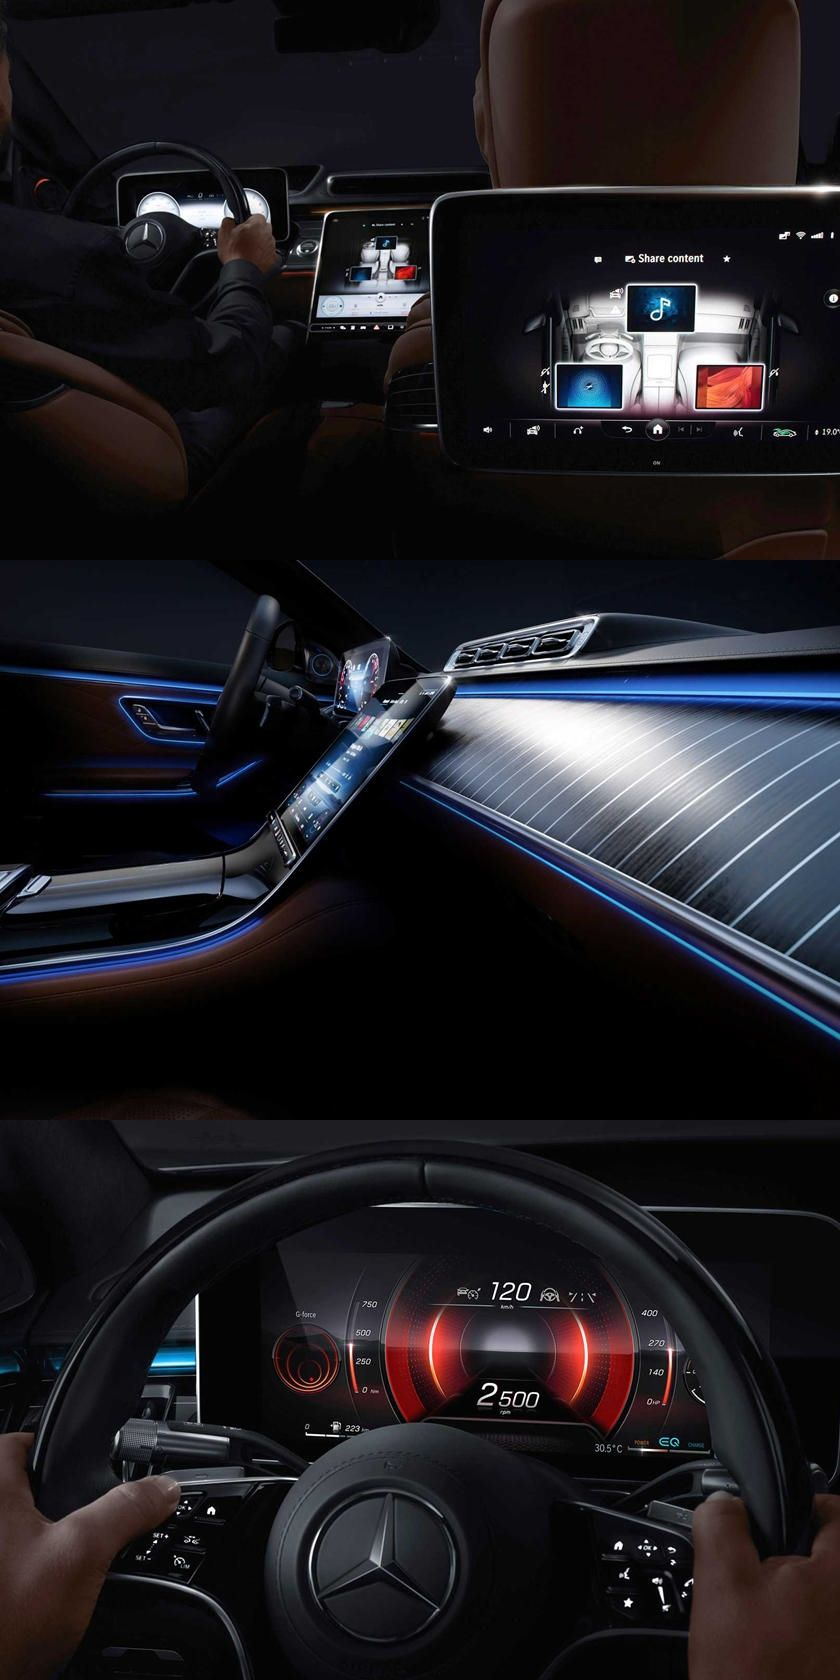 2021 Mercedes S Class Interior Shown In Full There S Even Heated Cushions On The Rear Seats In 2020 Mercedes S Class Interior Mercedes S Class S Class